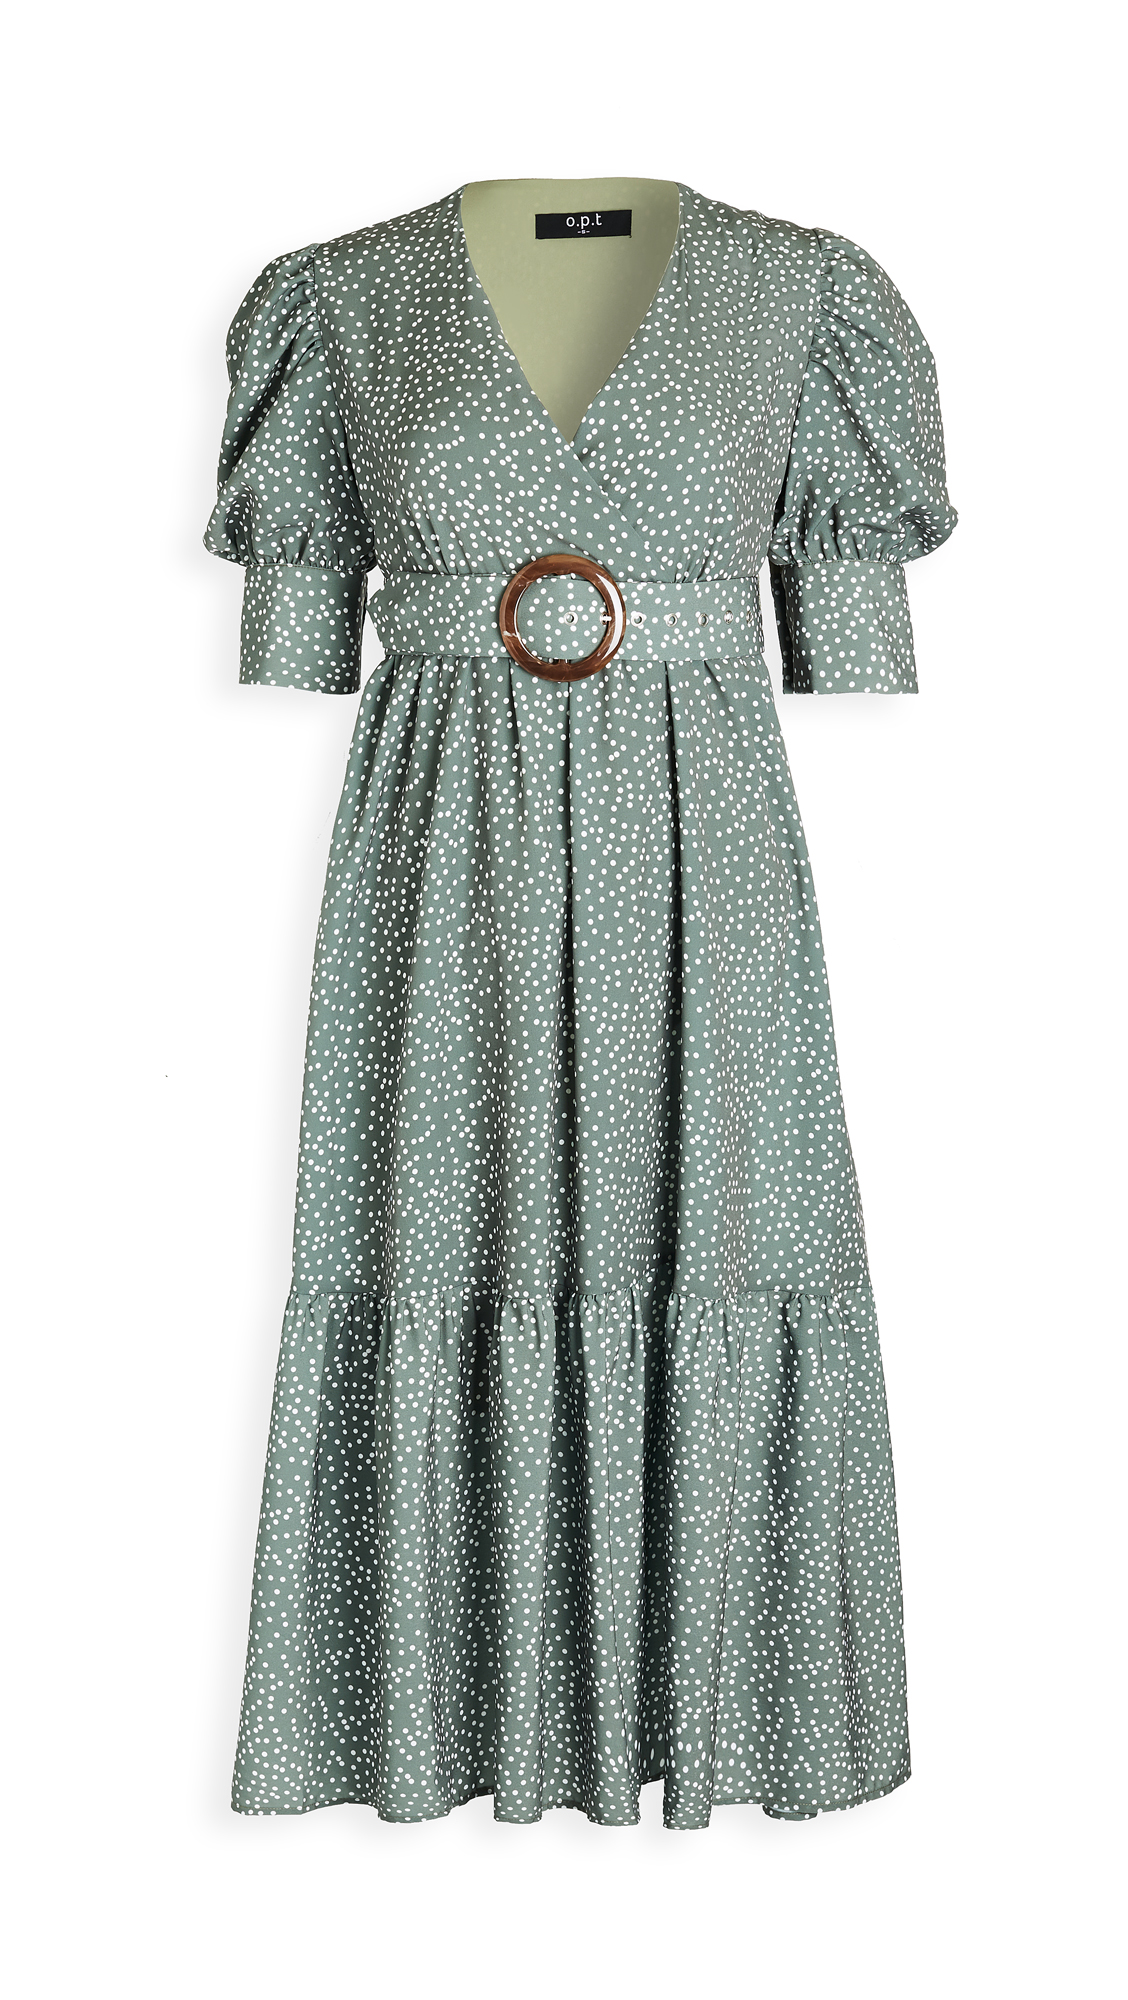 OPT Papin Dress - 30% Off Sale